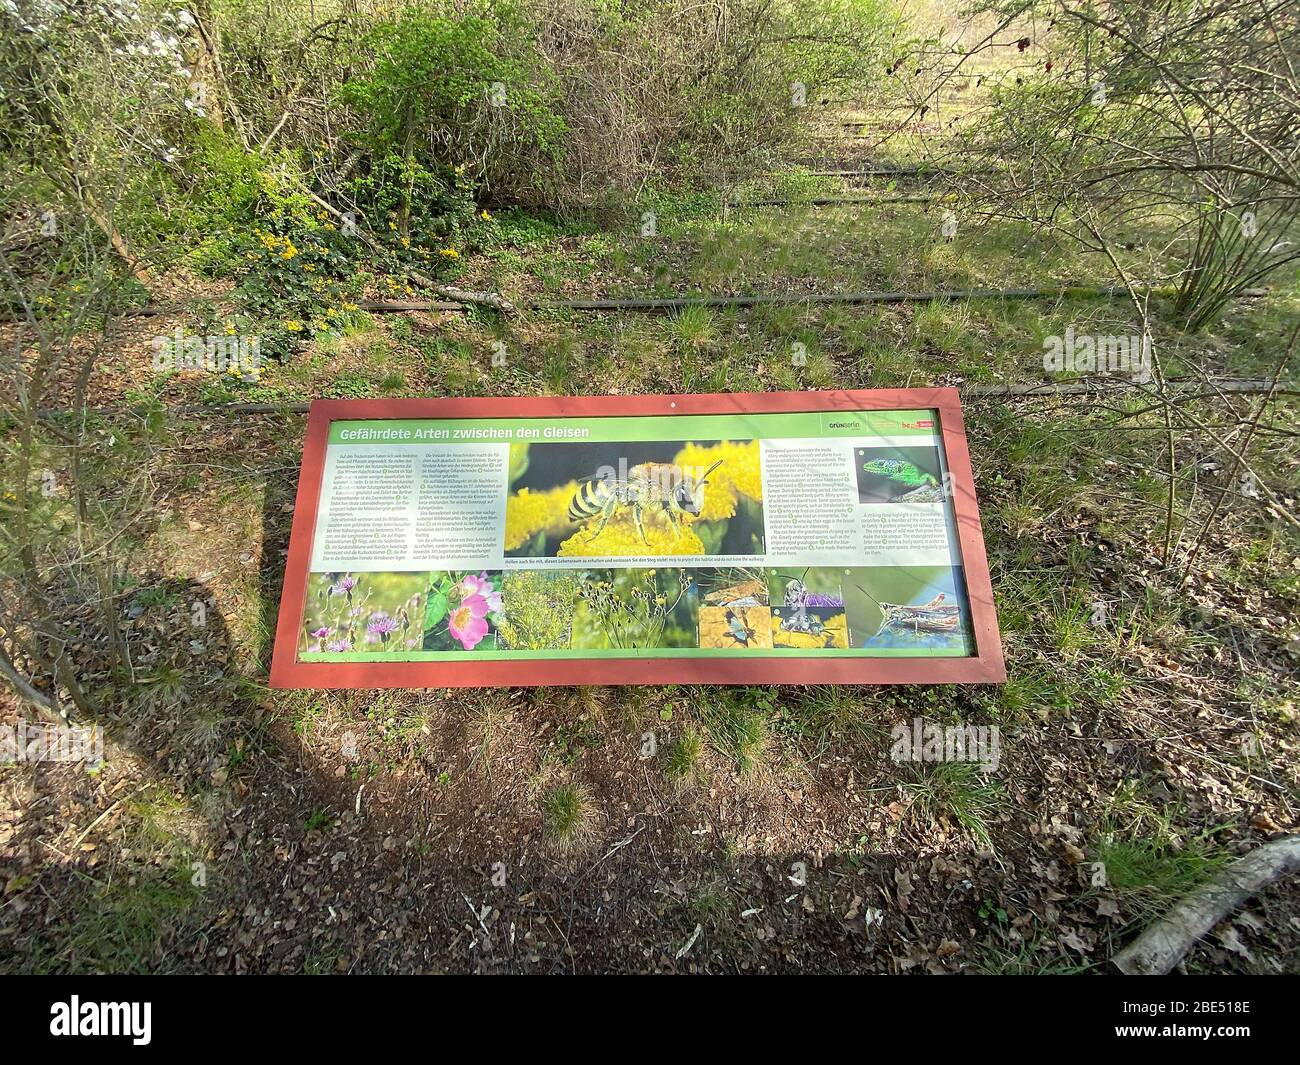 Schautafel High Resolution Stock Photography and Images   Alamy